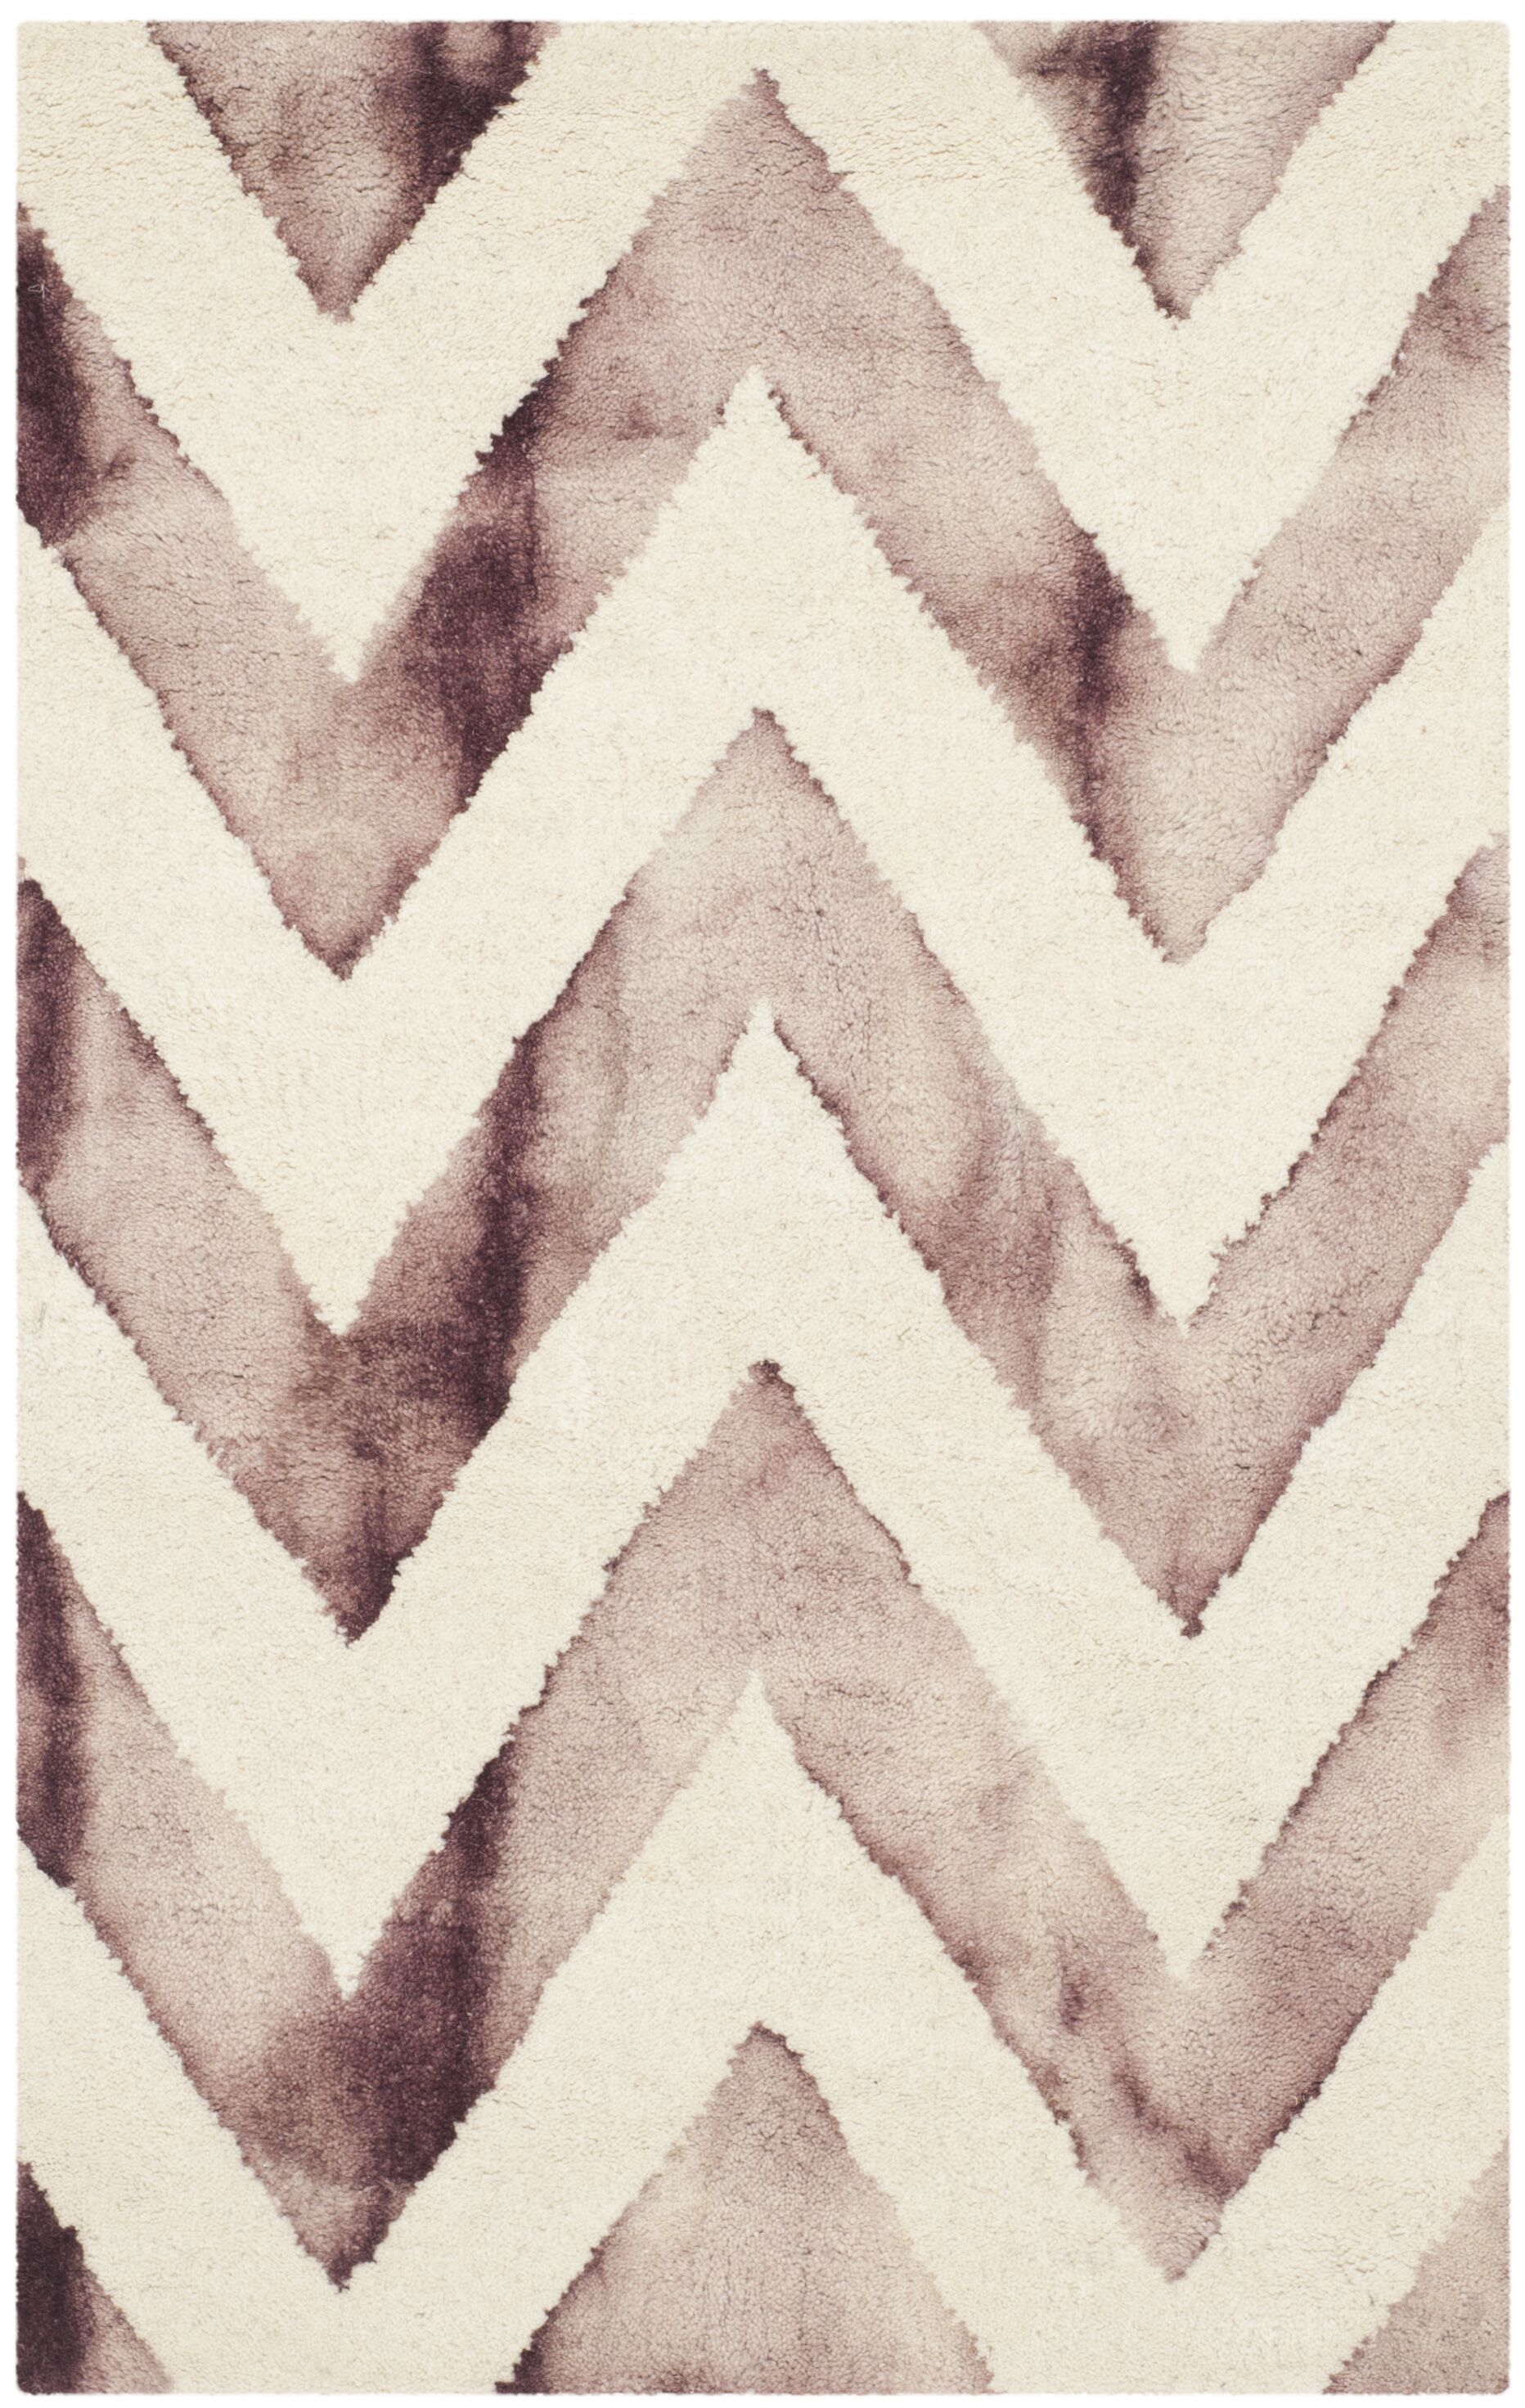 Vandermark Dip Dye Ivory/Maroon Area Rug Rug Size: Rectangle 6' x 9'